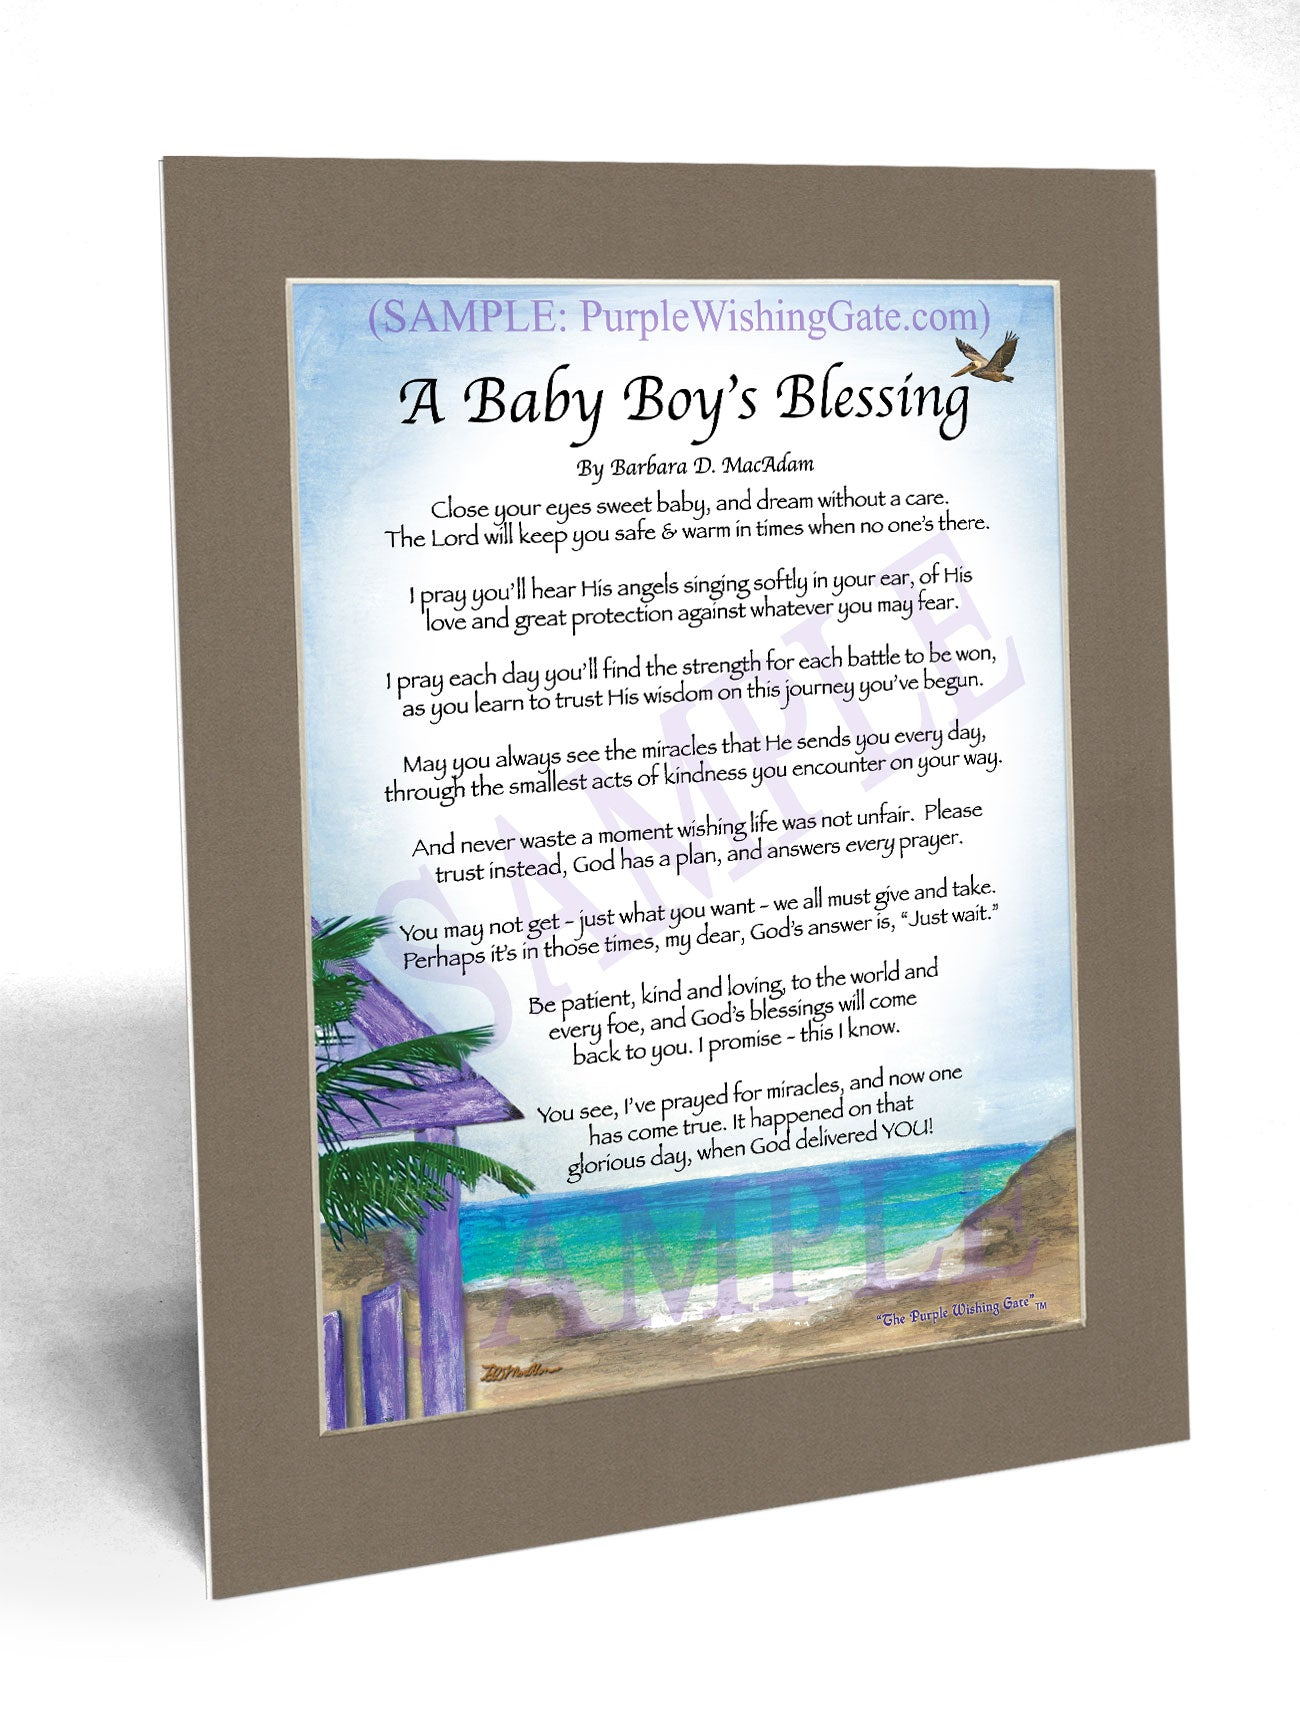 A Baby Boy's Blessing - Baby Gift - PurpleWishingGate.com